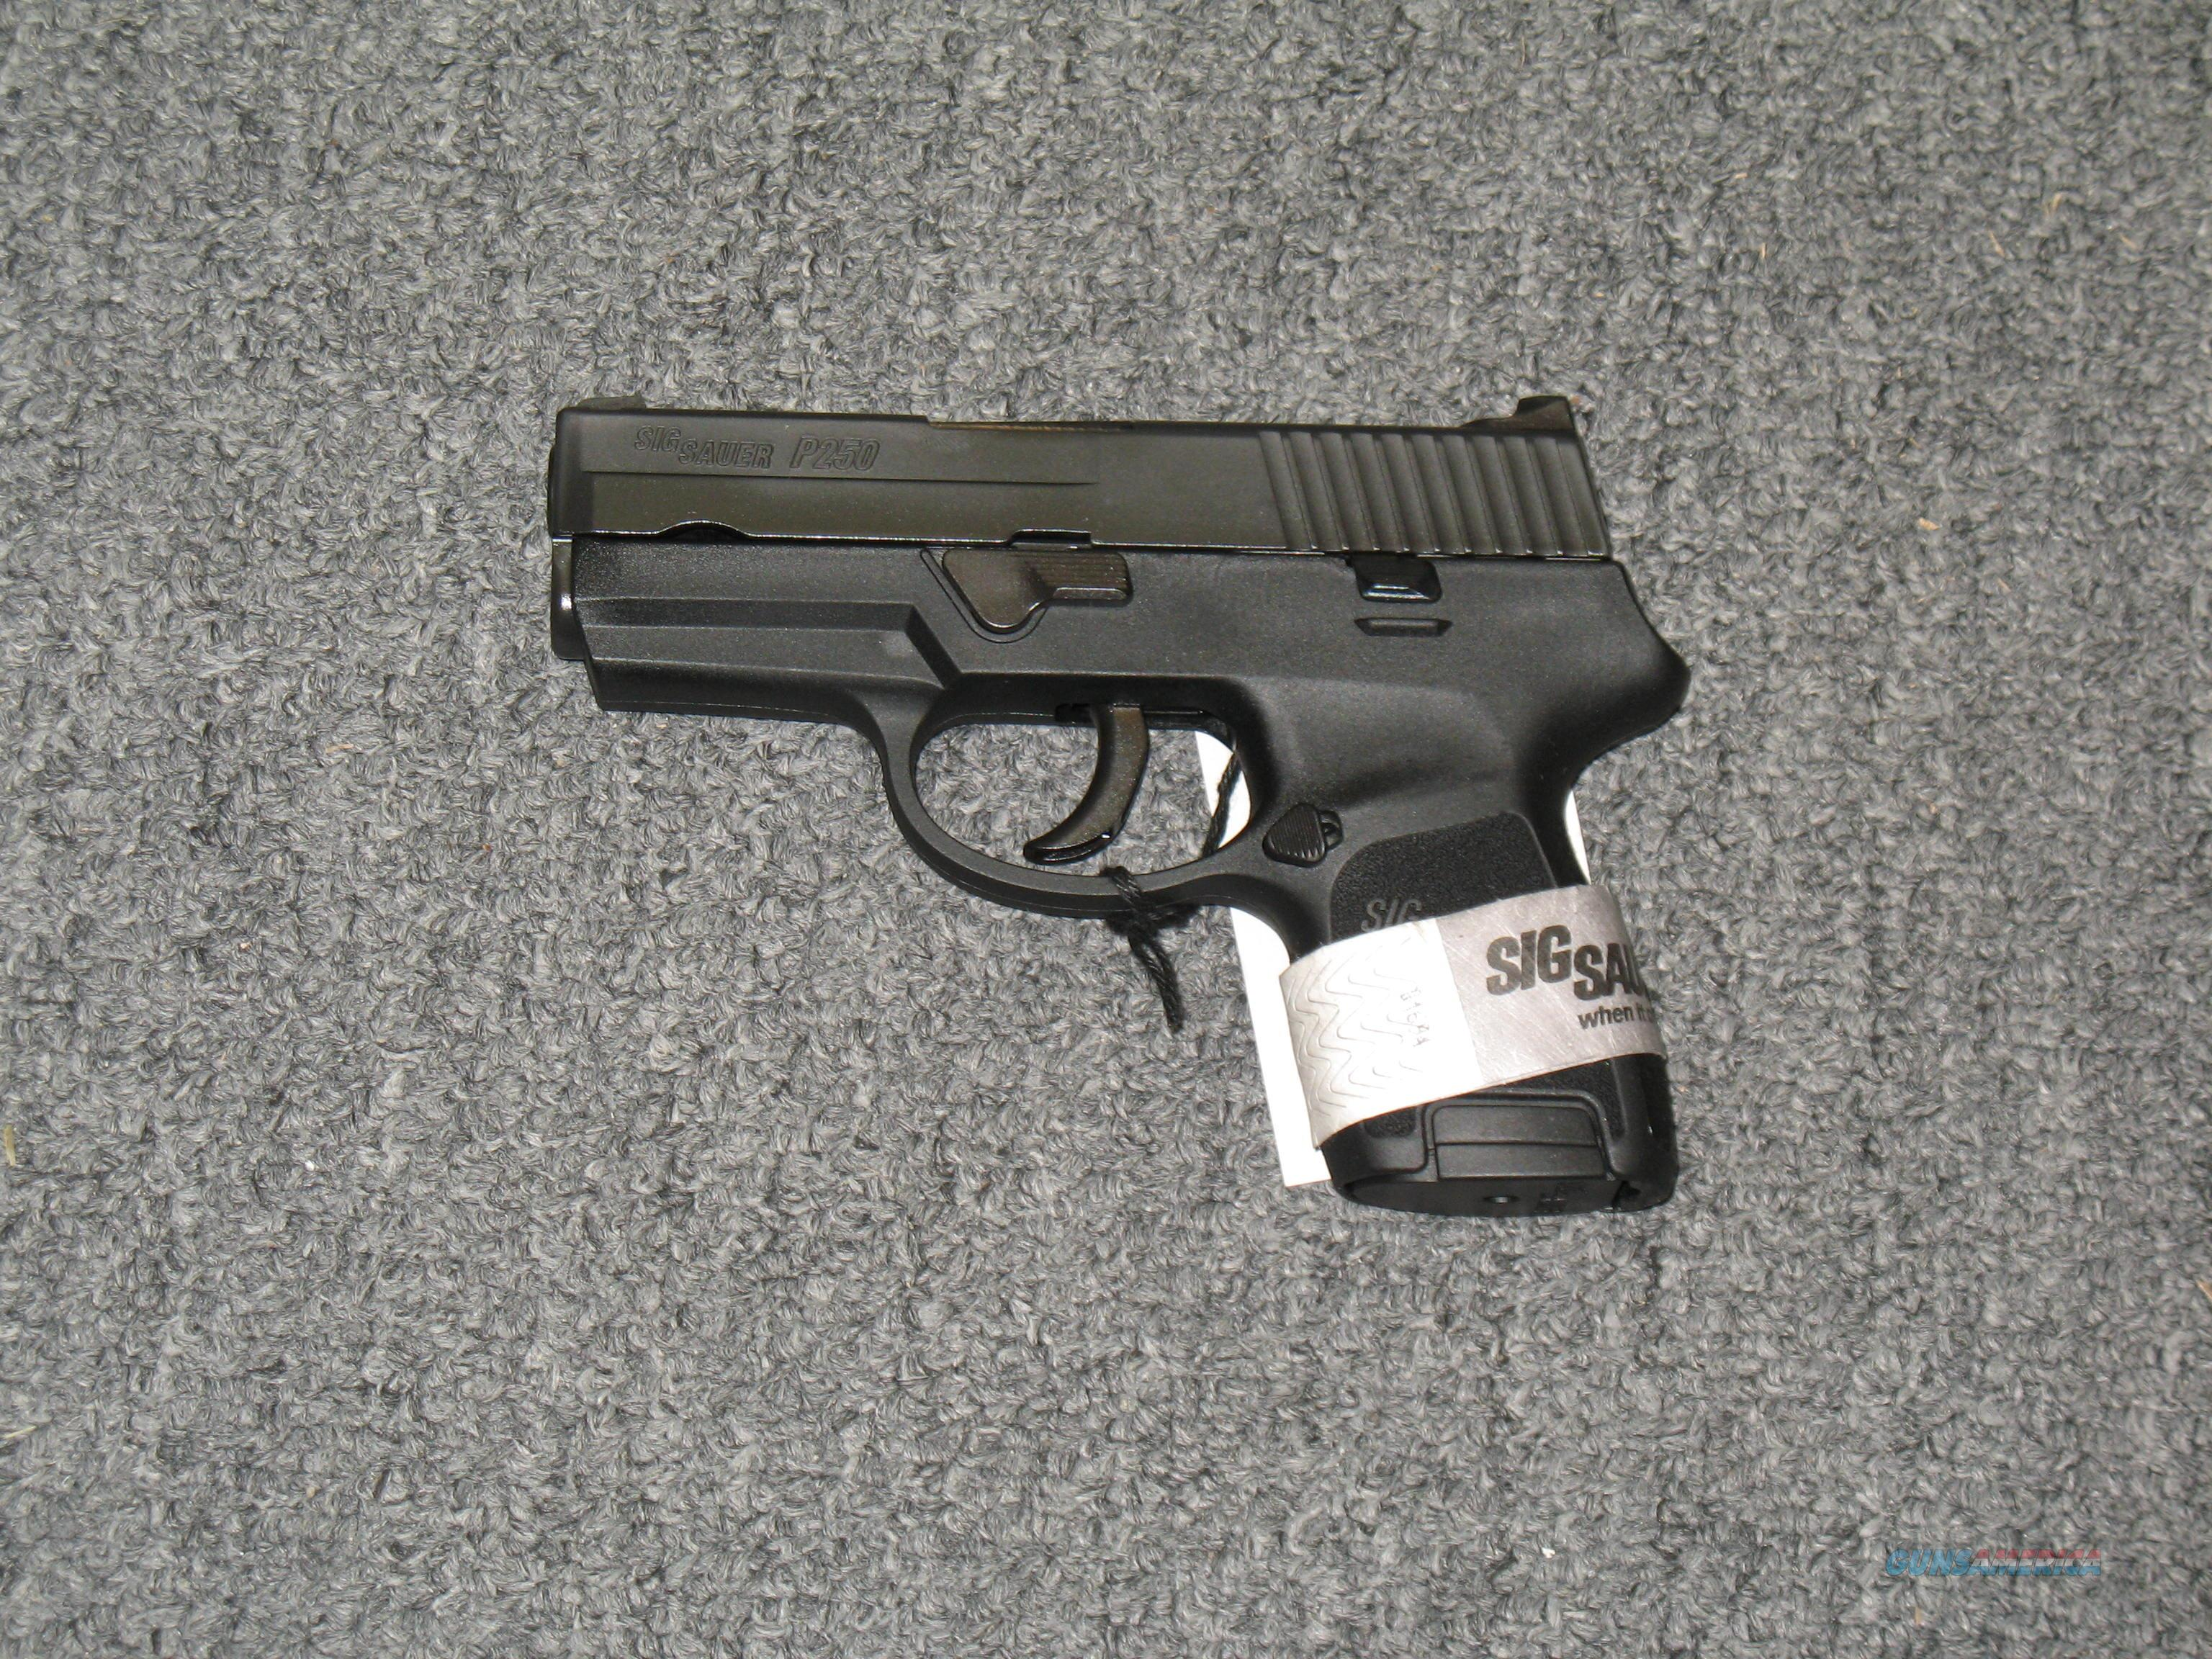 P250 Sub Compact  .40s&w w/two 10 rnd mags (SS grip)  Guns > Pistols > Sig - Sauer/Sigarms Pistols > P250